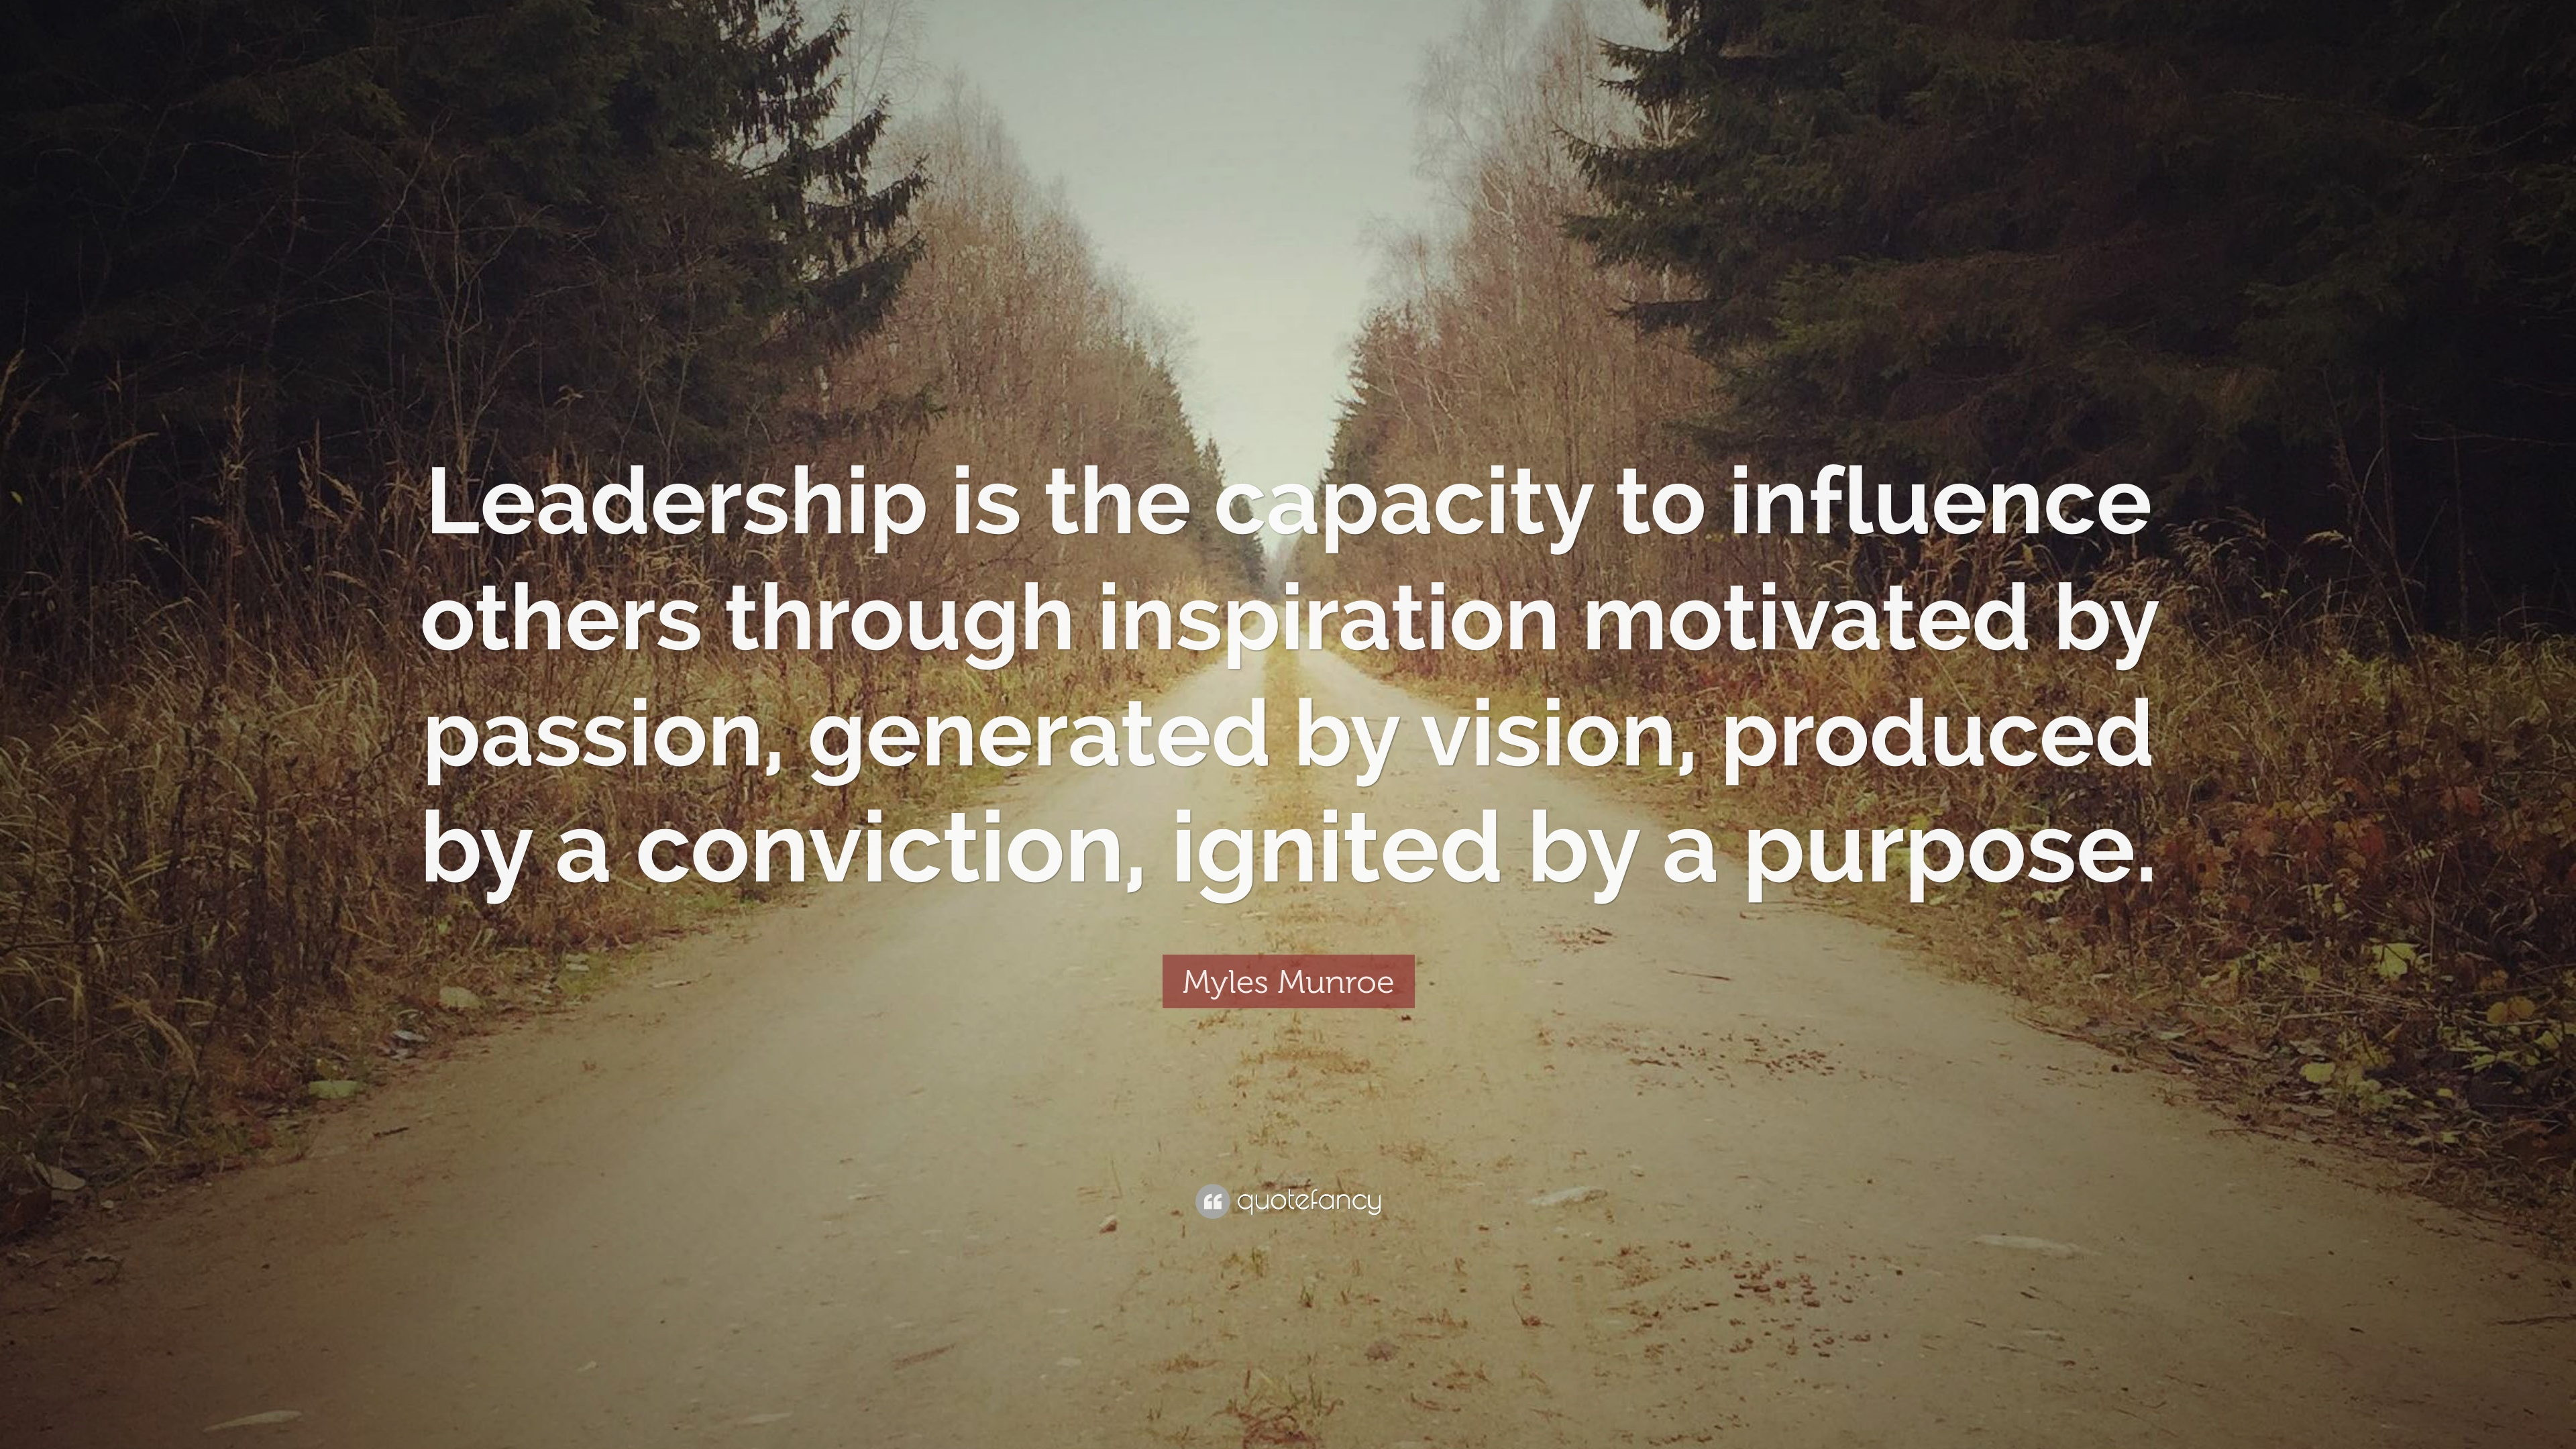 Myles Munroe Quote: Leadership is the capacity to